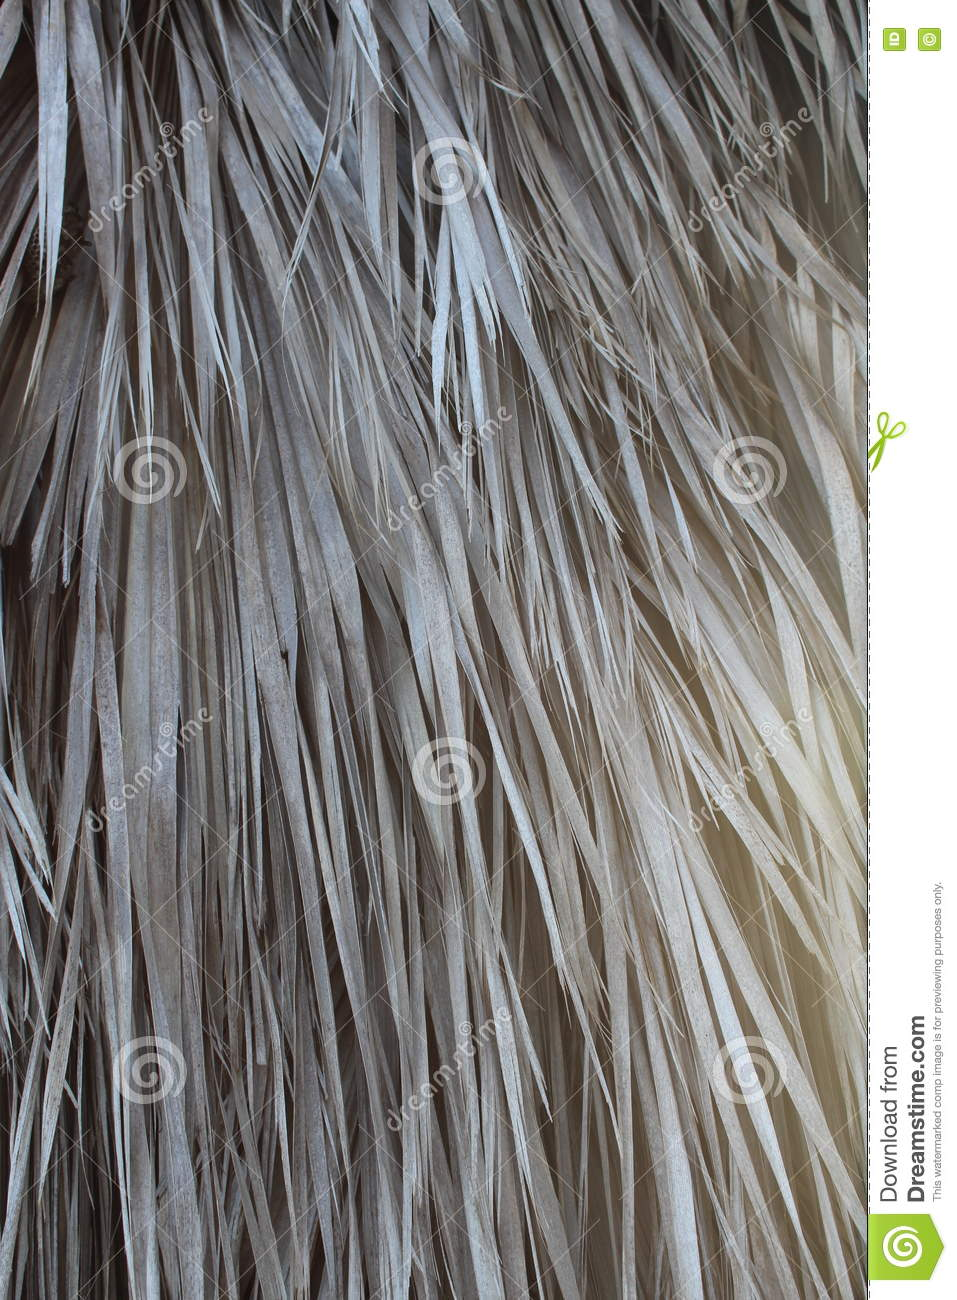 Dry Palm Leaves Texture Royalty Free Stock Photography